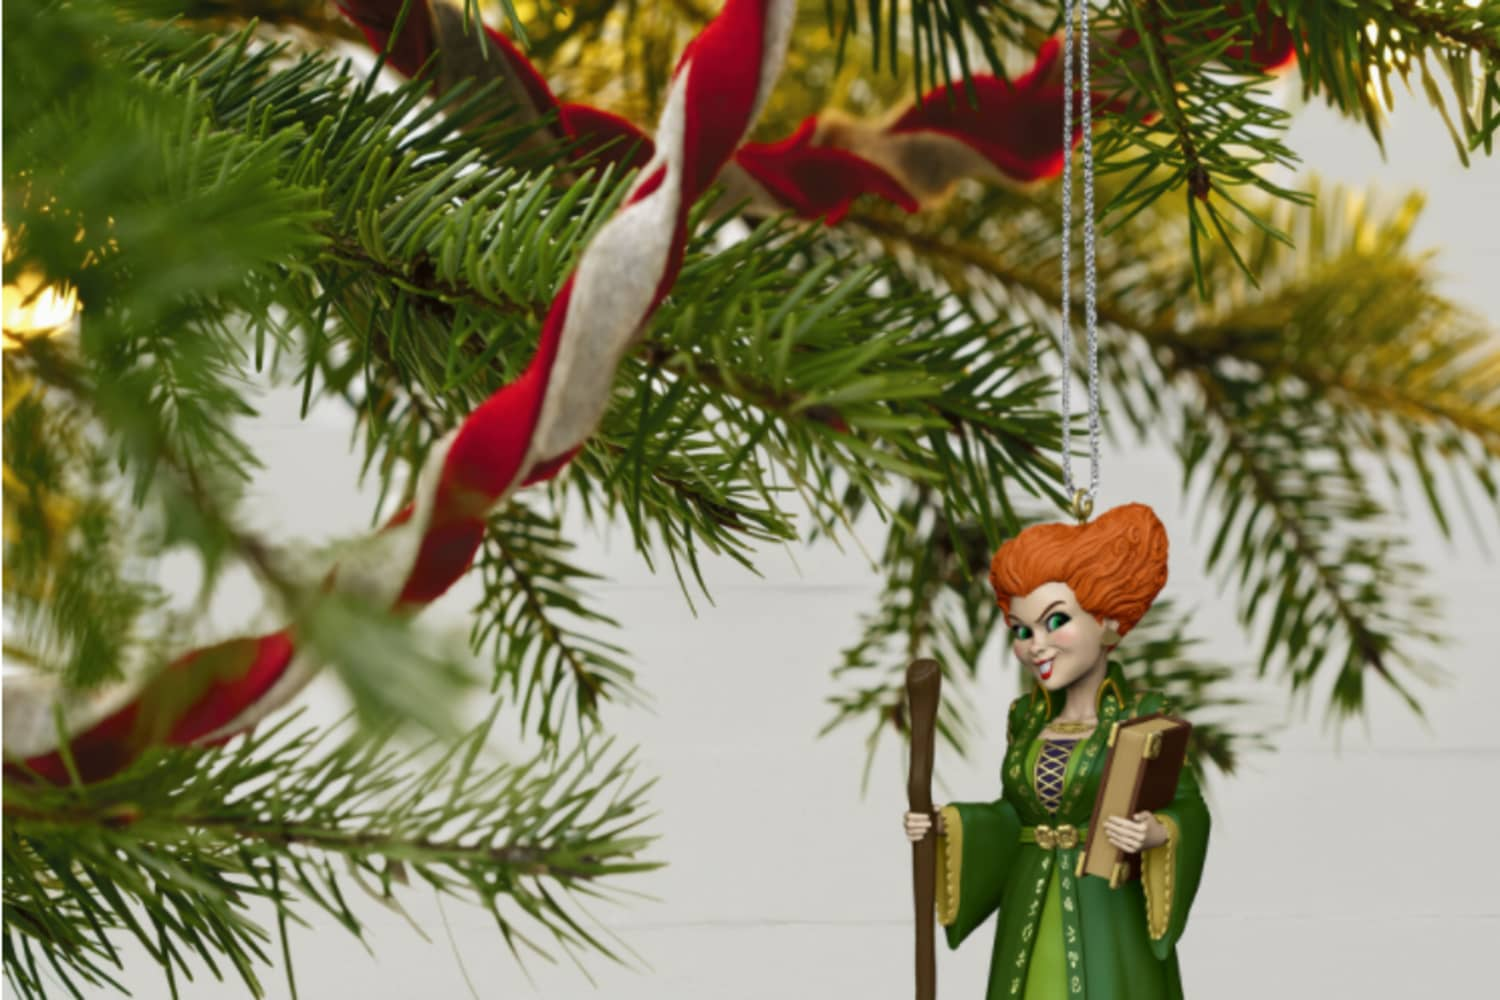 """Hallmark Have Released A """"Hocus Pocus"""" Ornament In Time For Fall"""